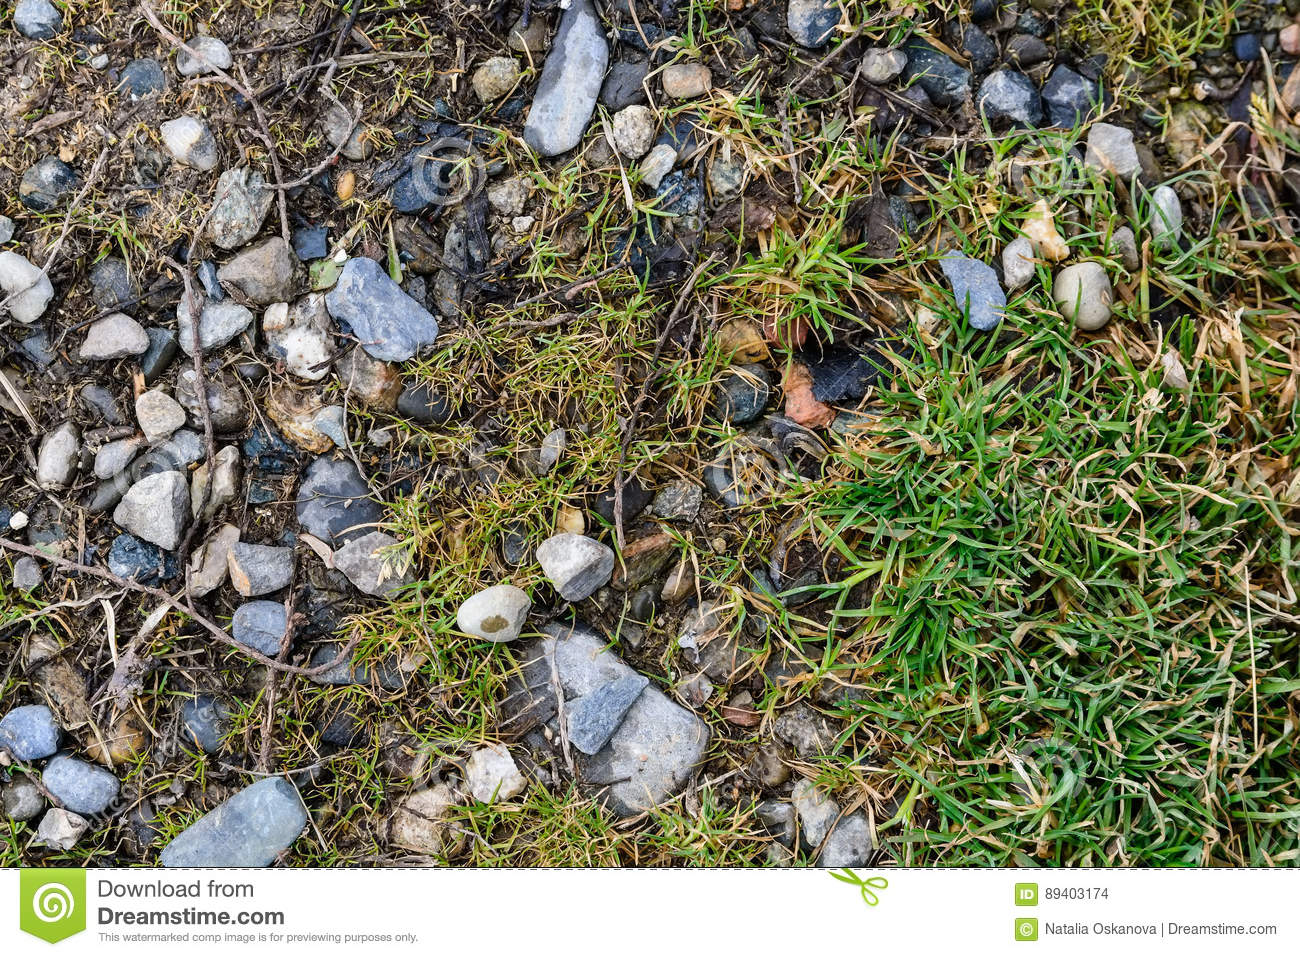 Rocky stones and grass on ground